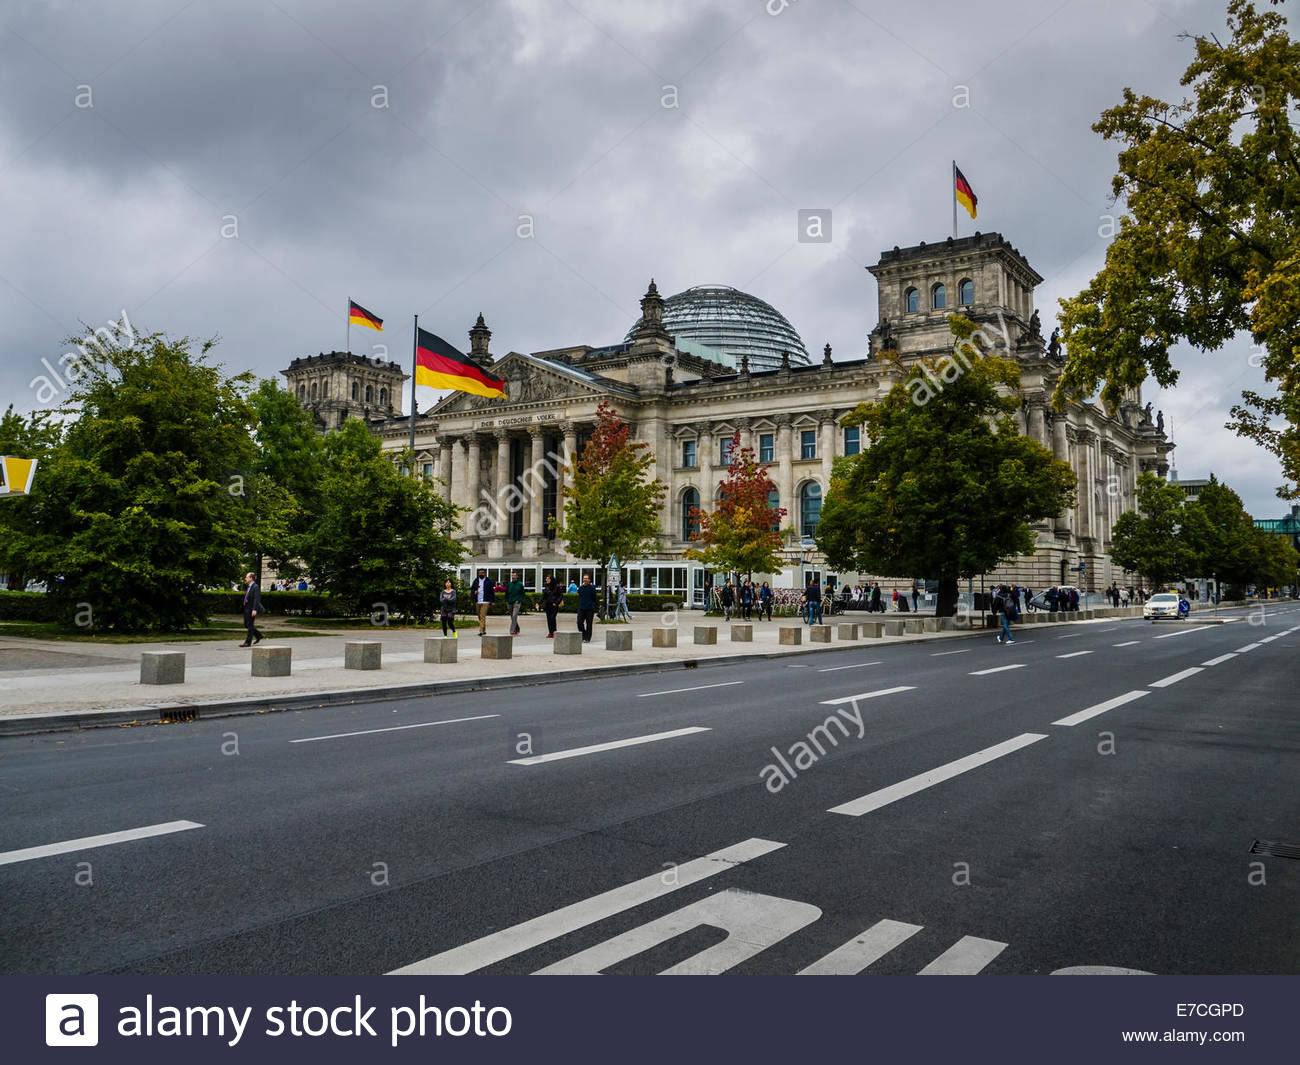 Berlin, Reichstag Germany - Stock Image